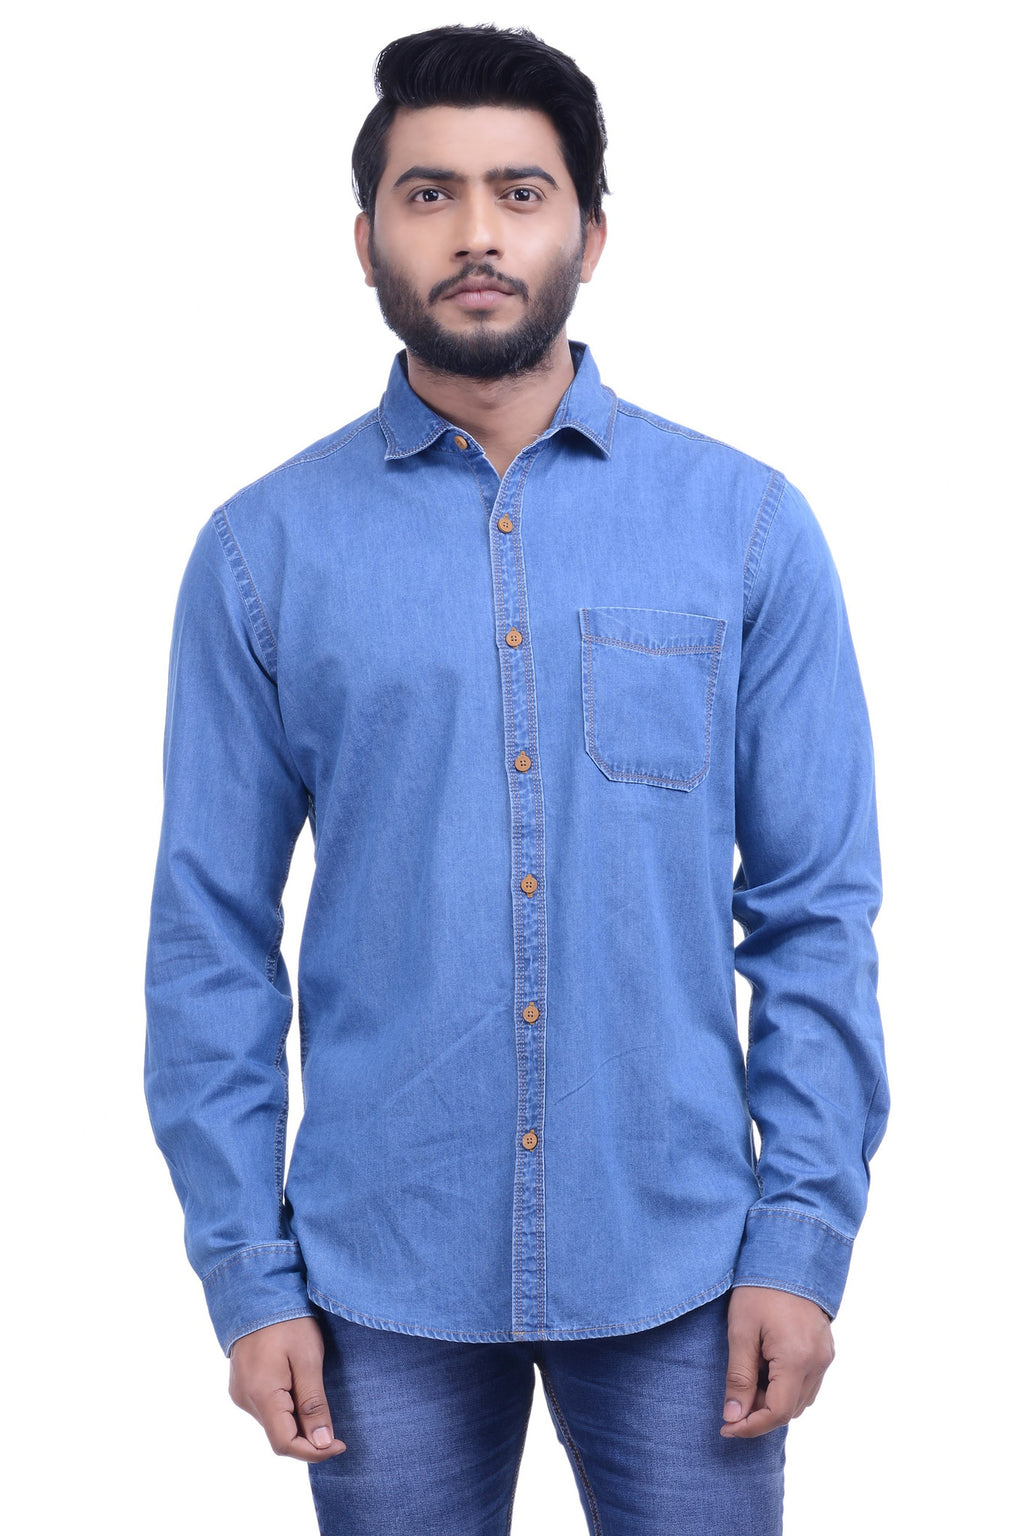 Hoffmen Men's Solid Casual Blue Denim Shirt DMA462-08